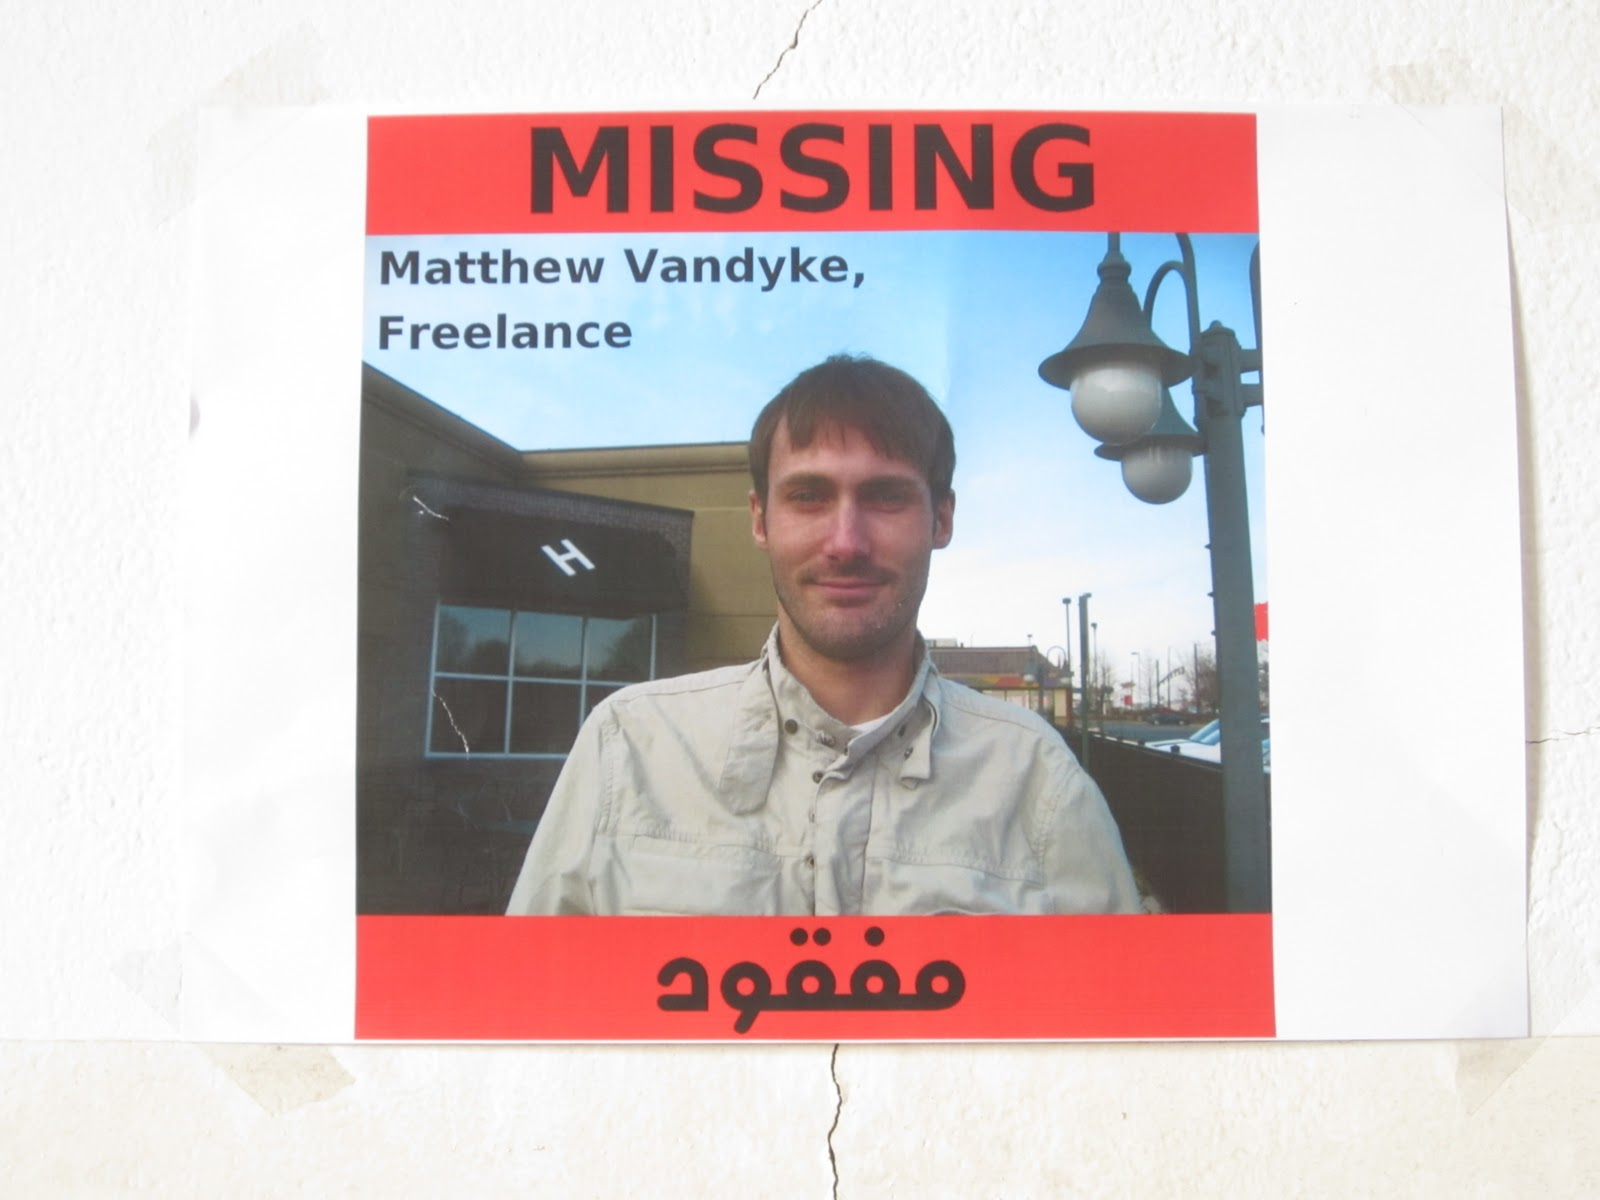 Make A Missing Poster What Does A Resume Cover Letter Consist Of IMG 0251  Make A Missing Posterhtml Make A Missing Person Poster  Missing People Posters